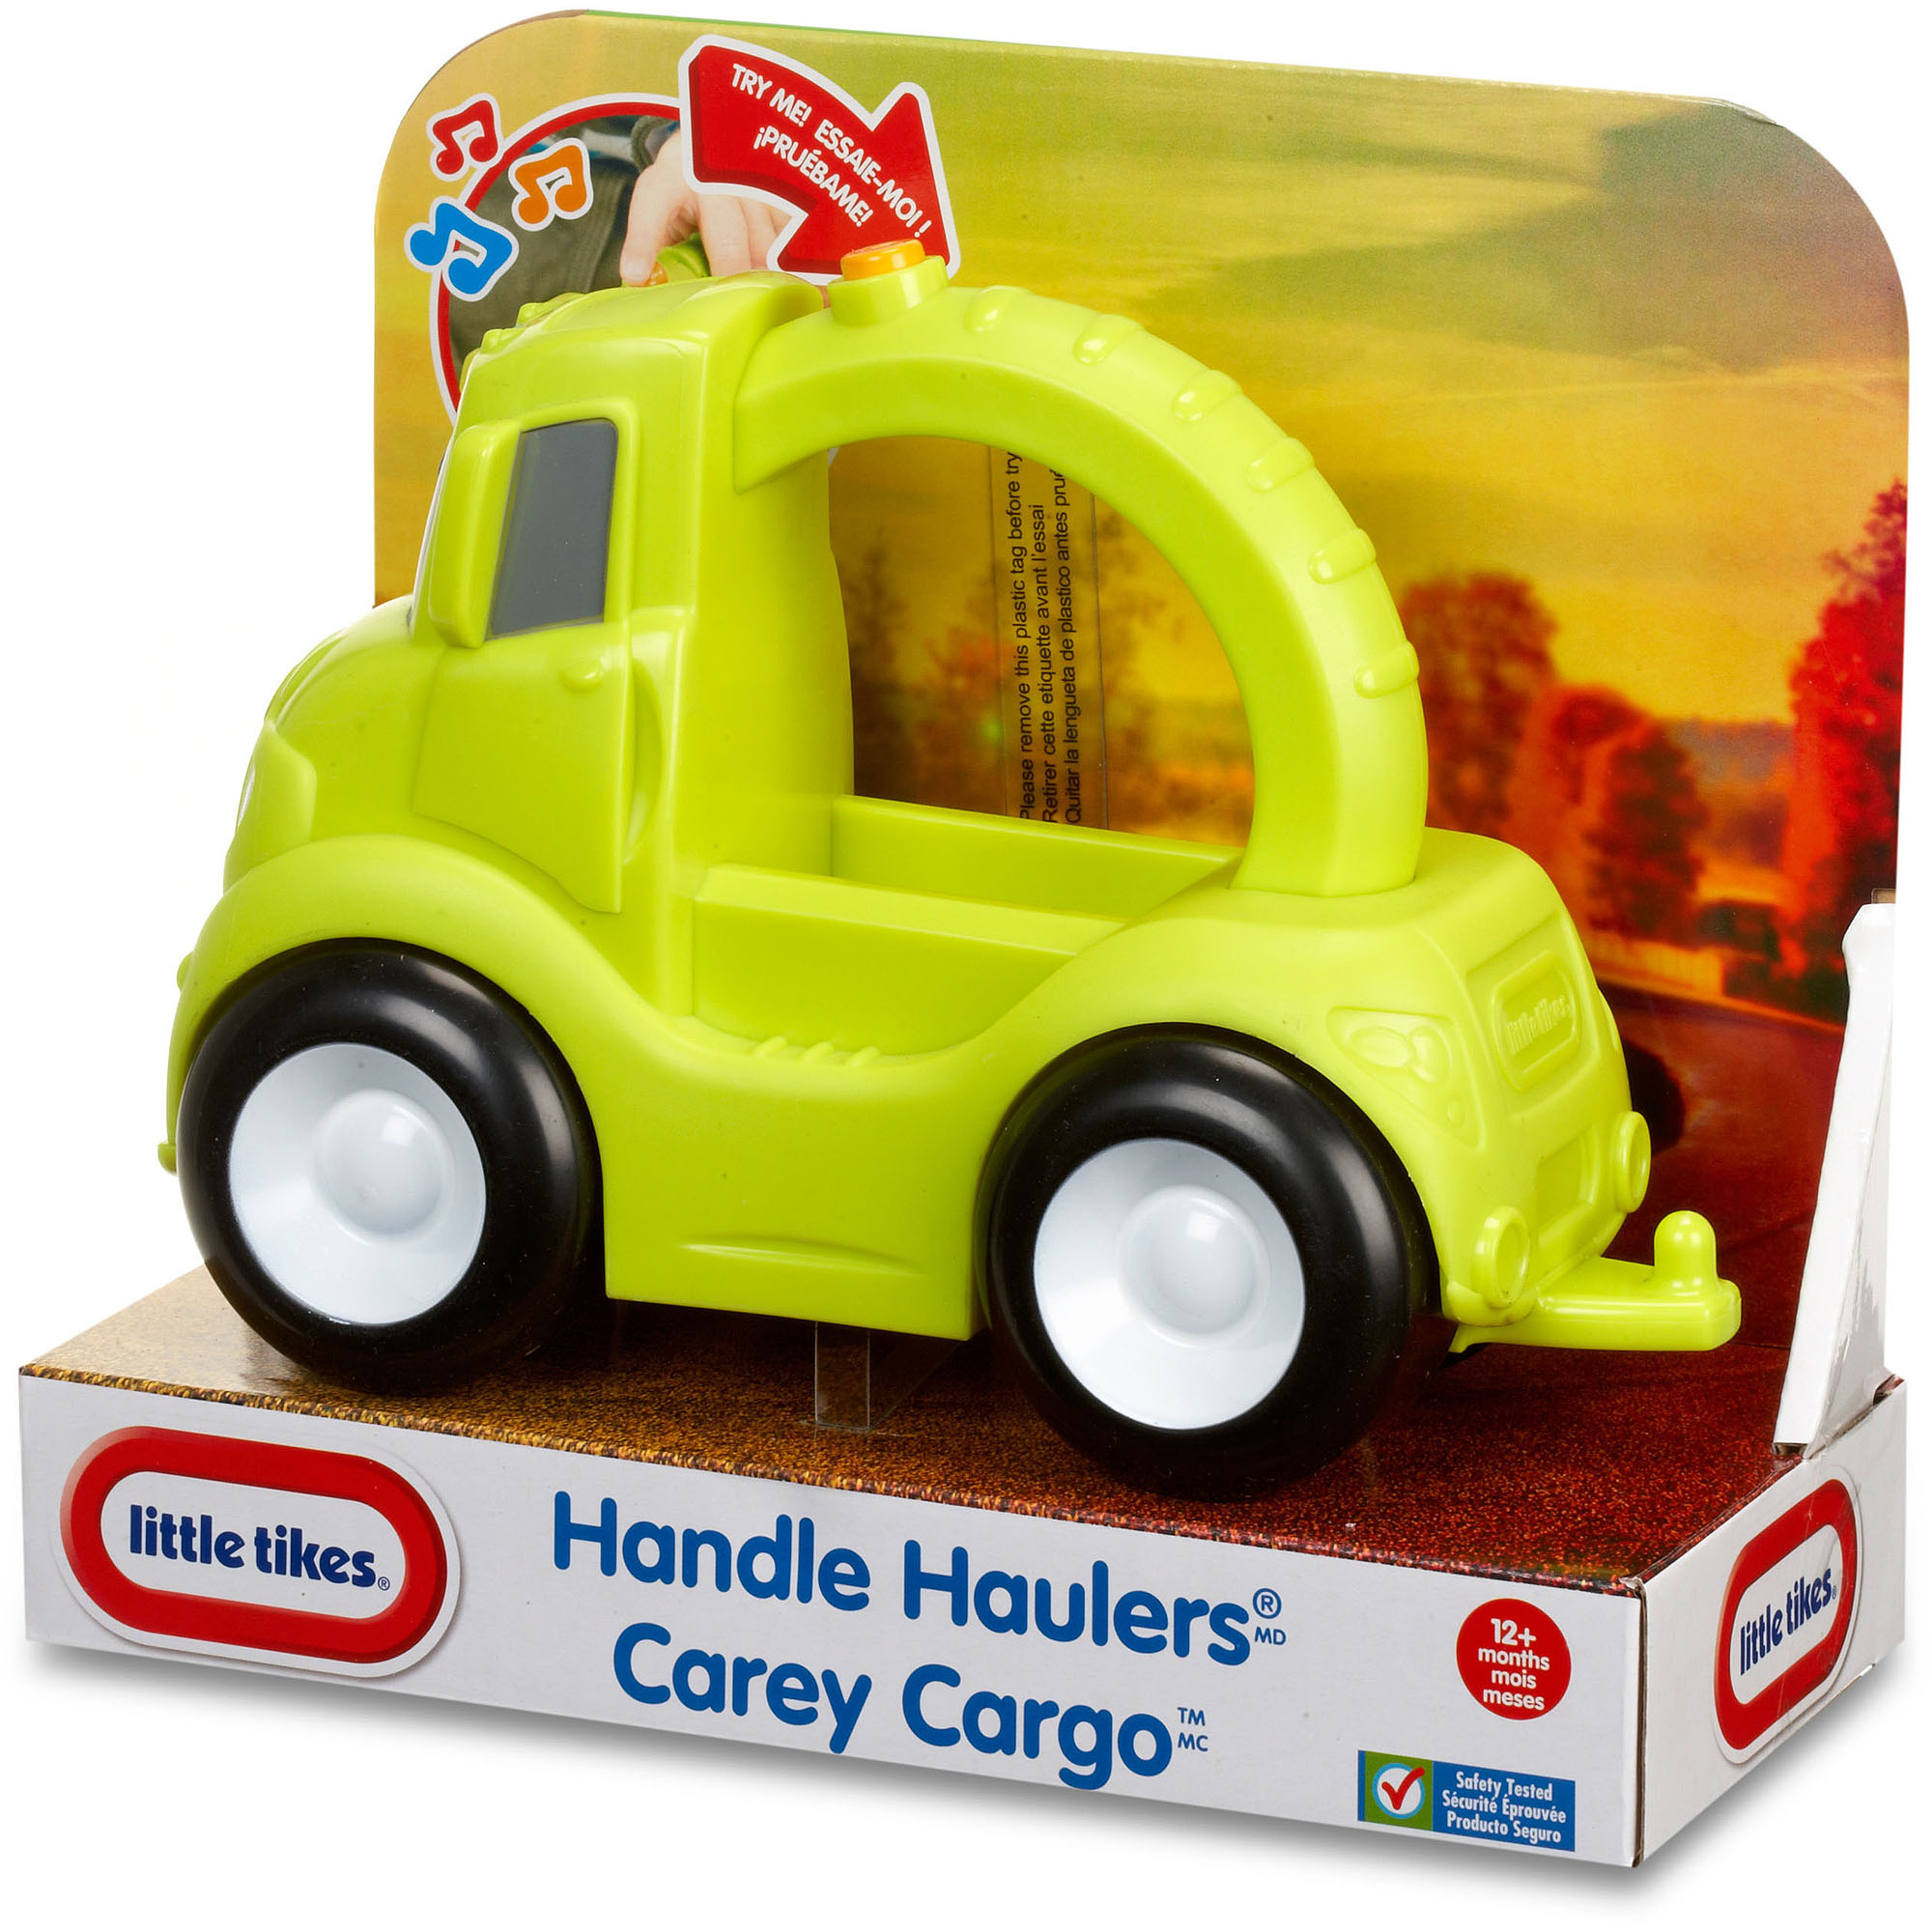 Little Tikes Handle Haulers, Carey Cargo